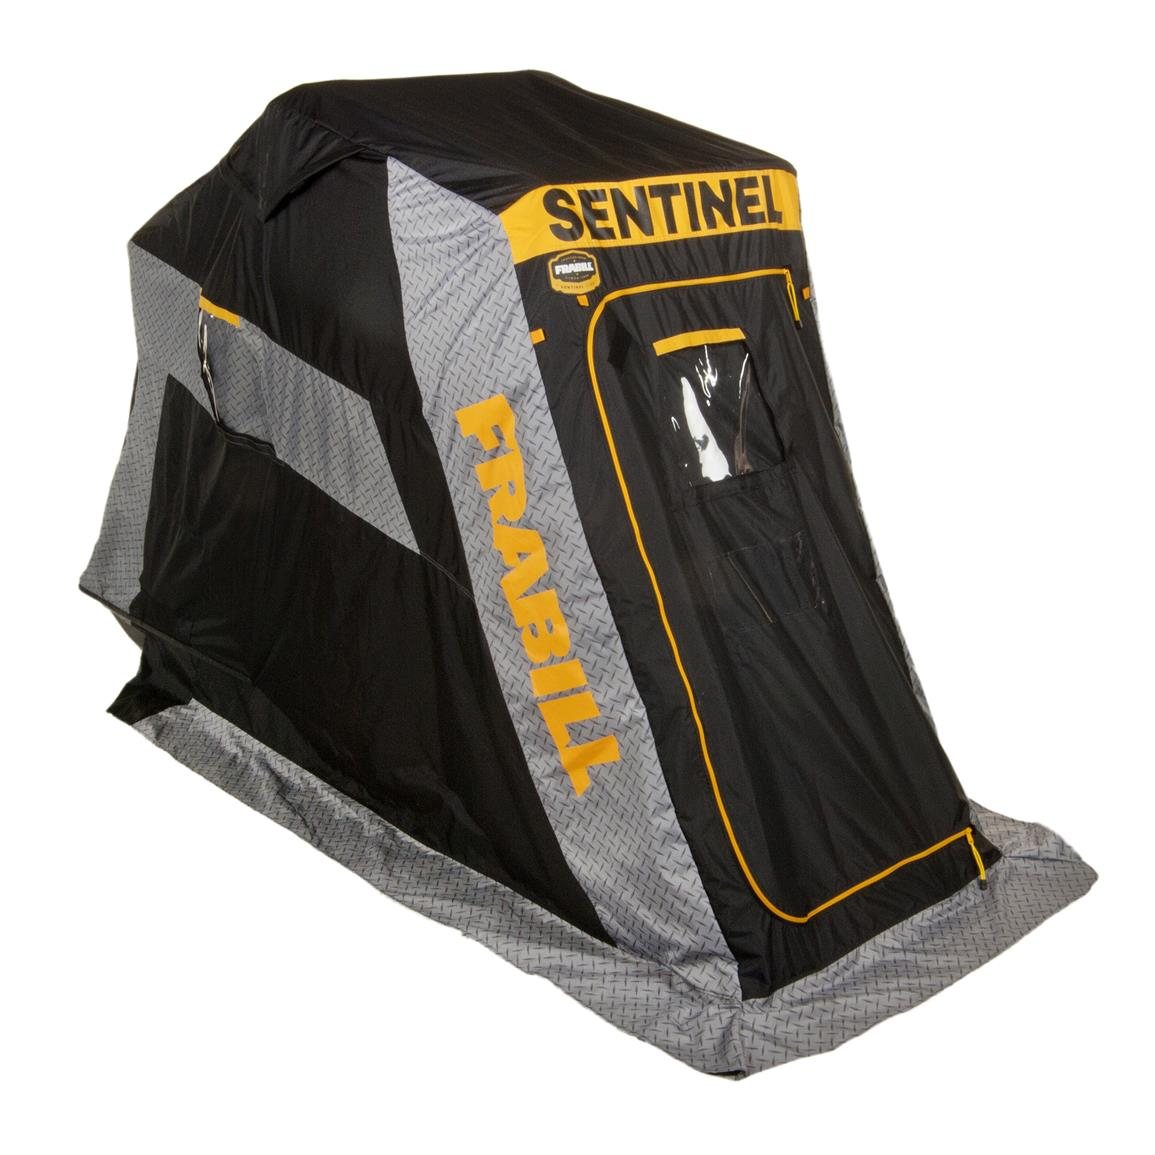 Frabill Sentinel 1000 Ice Shelter, Flip Over, Single Person